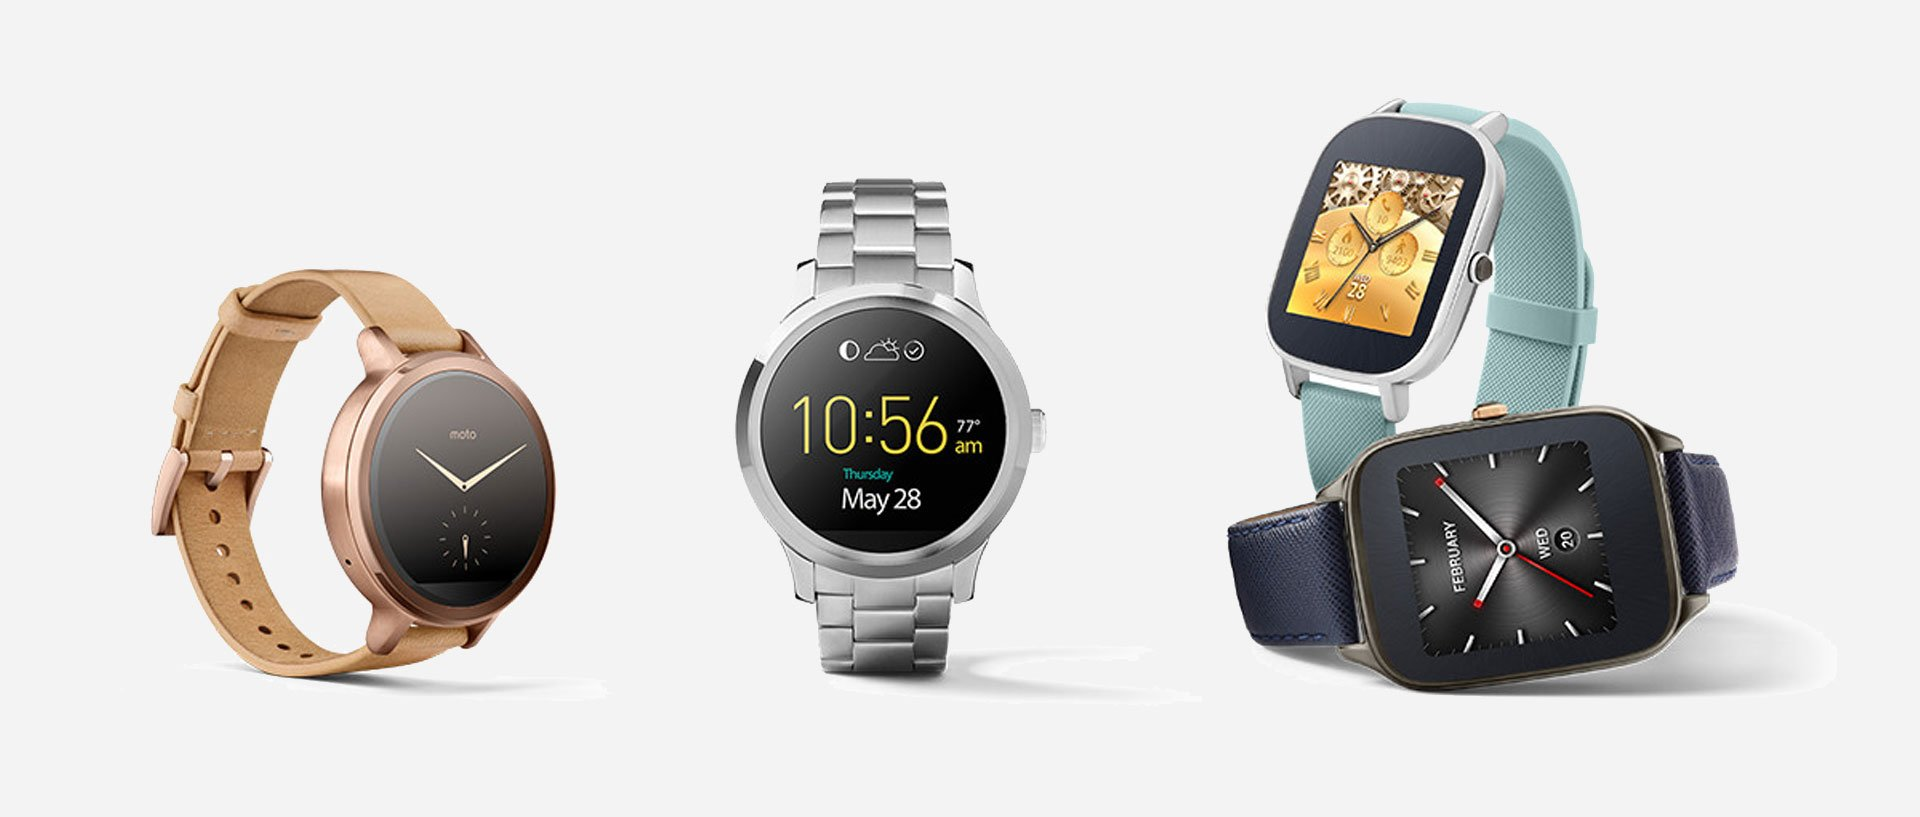 Android Wear Smartwatches Have a 'Me Too' Problem